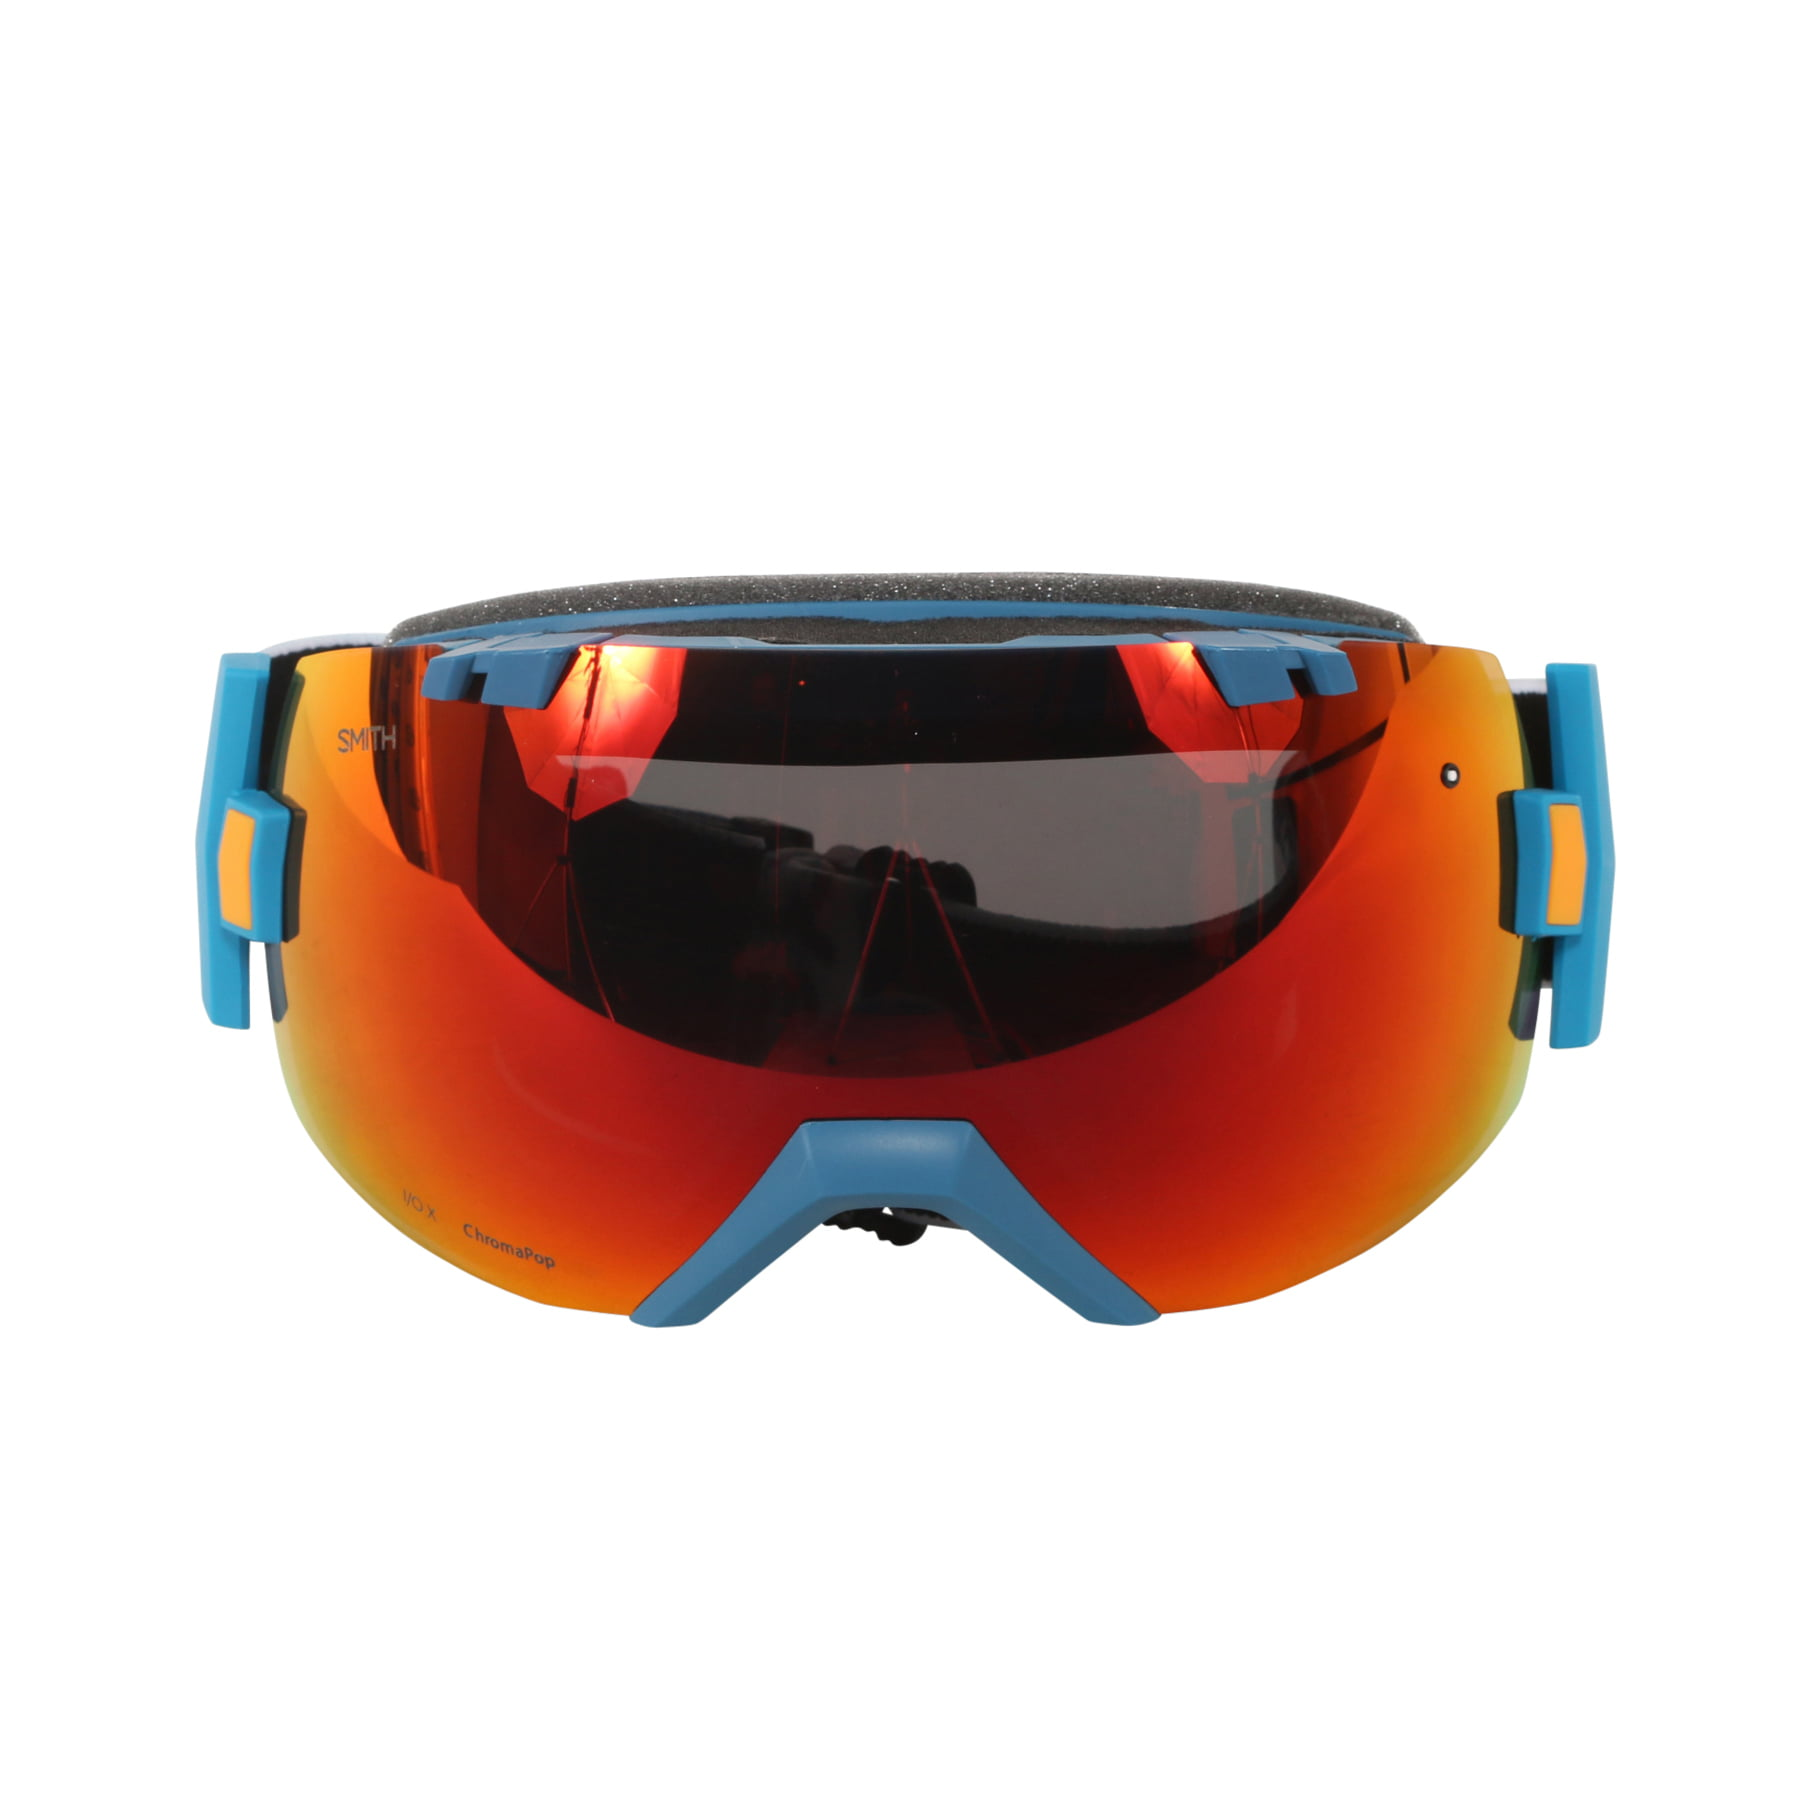 a8aabcae32 Smith optics kindred chromapop sun i ox snow goggles jpeg 450x450 Smith  chromapop sun red